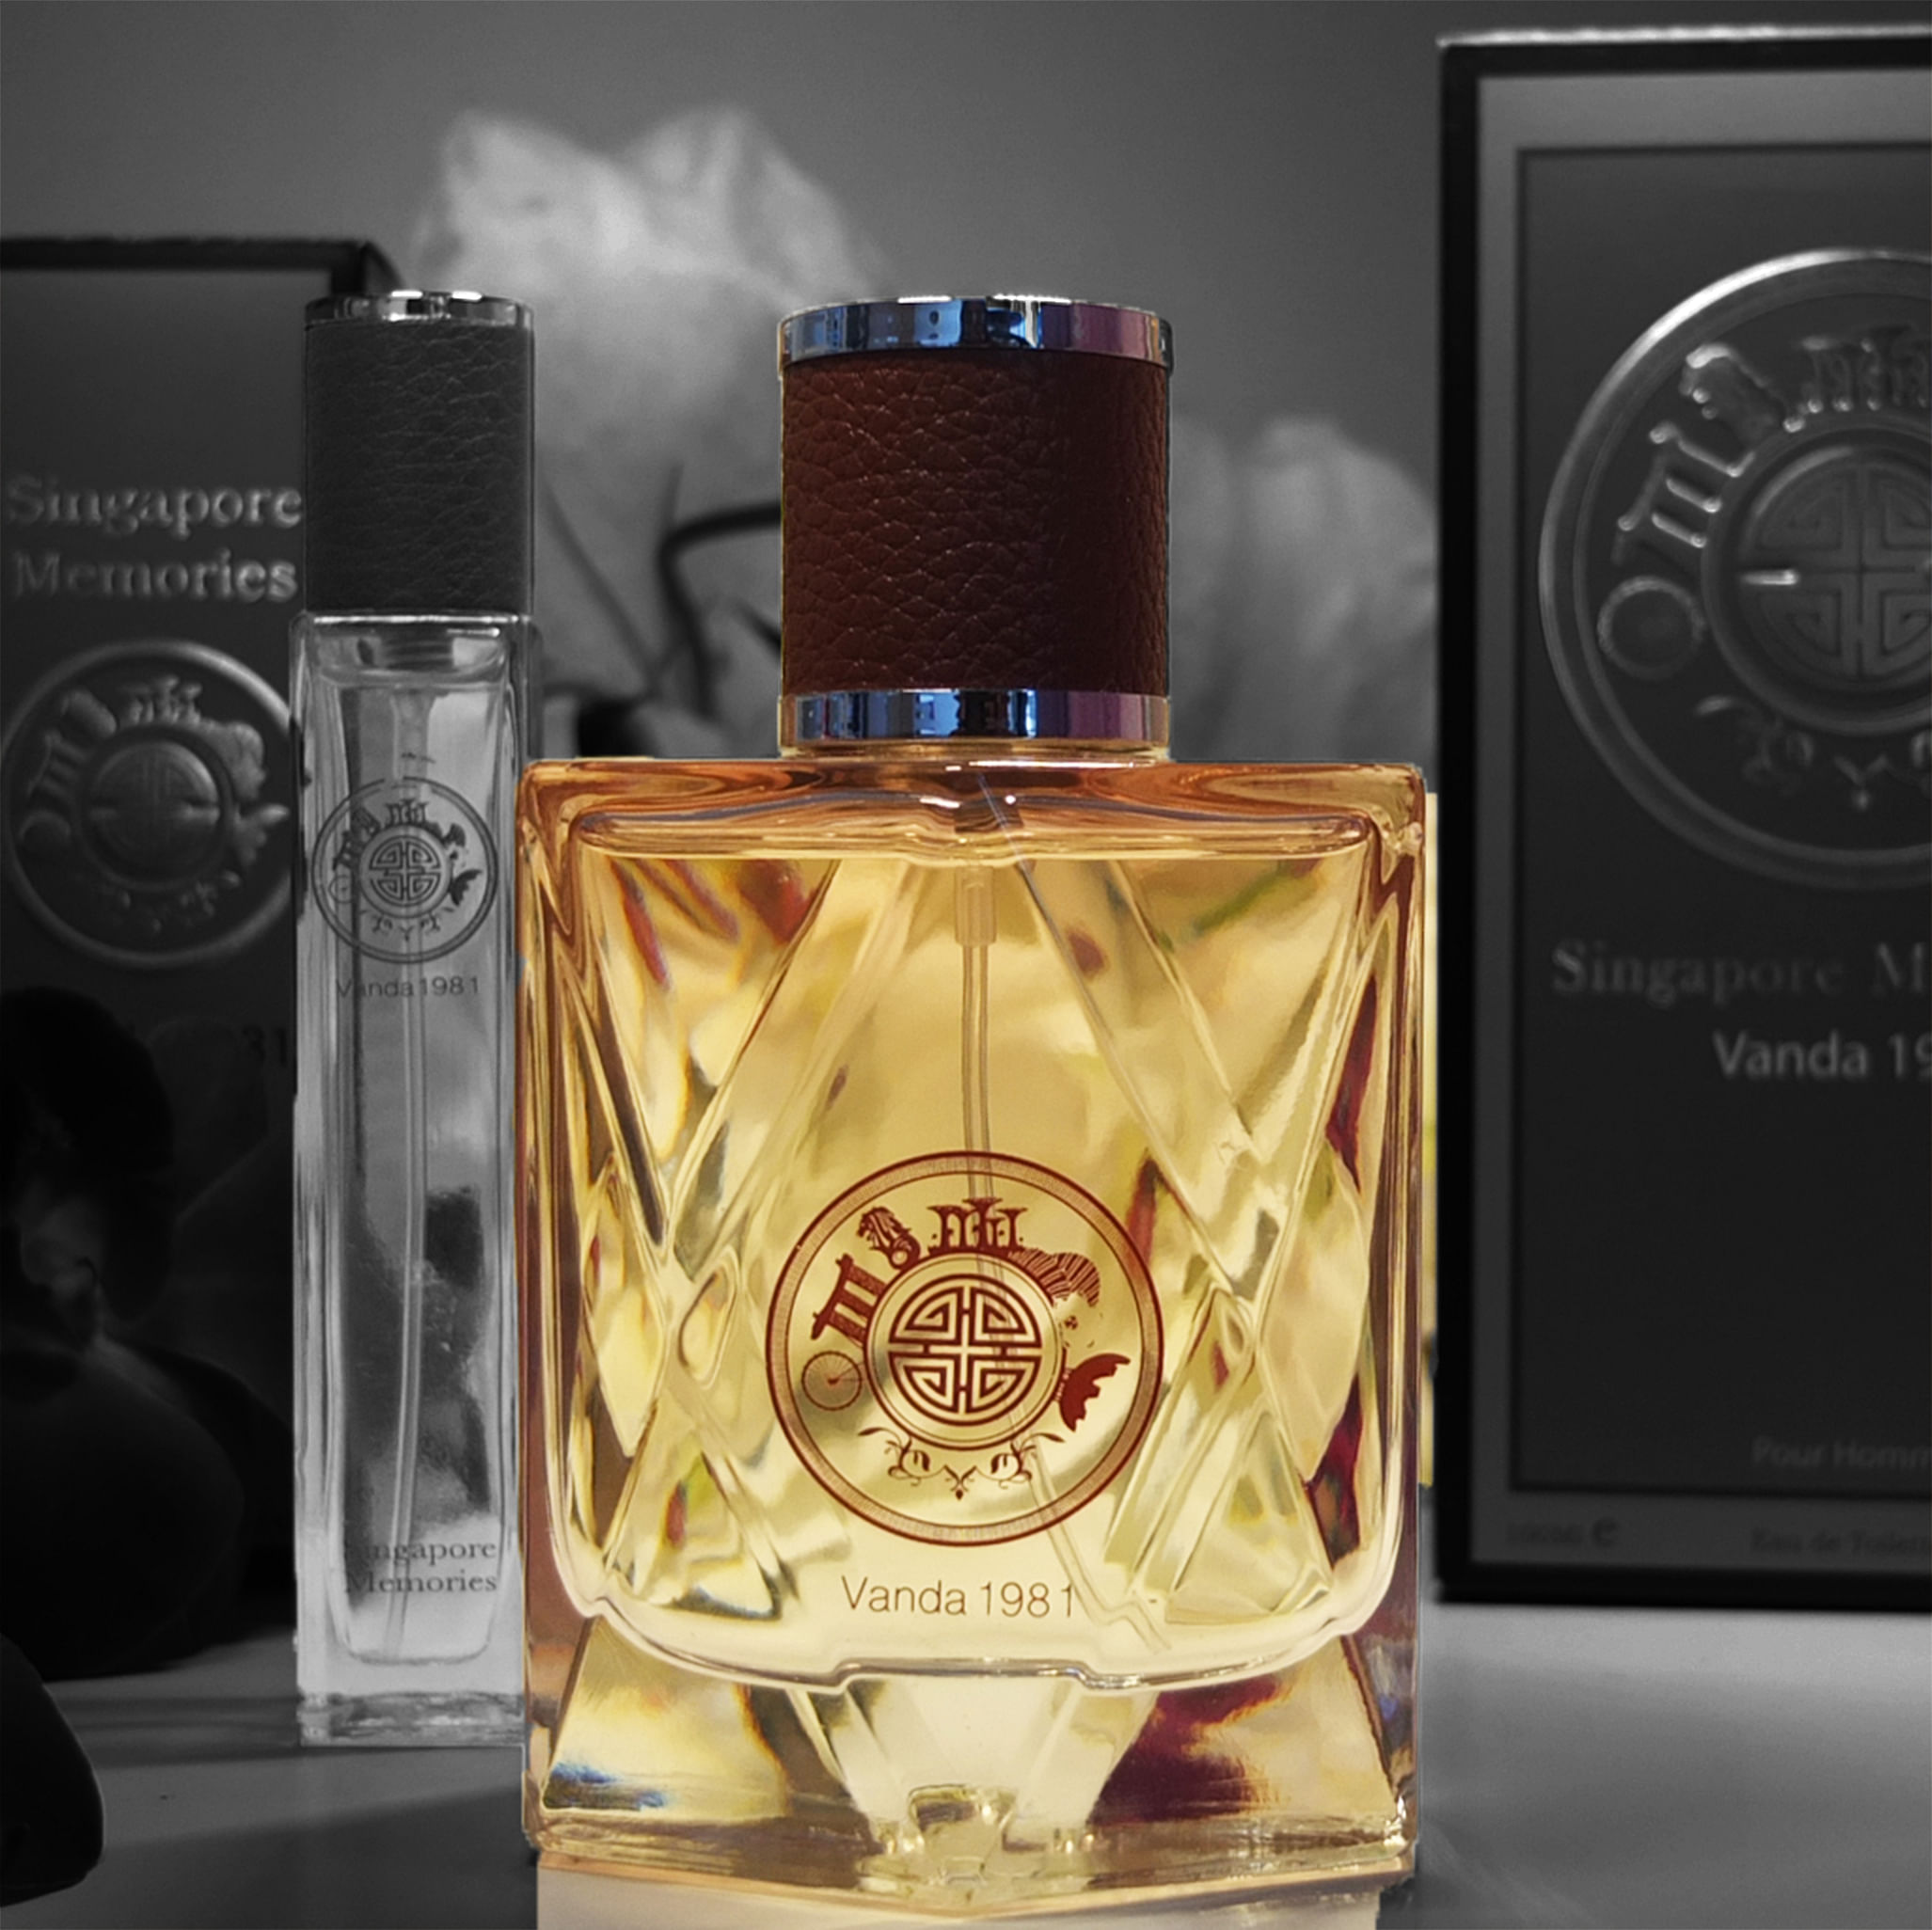 singapore perfume with orchid scents from singapore memories